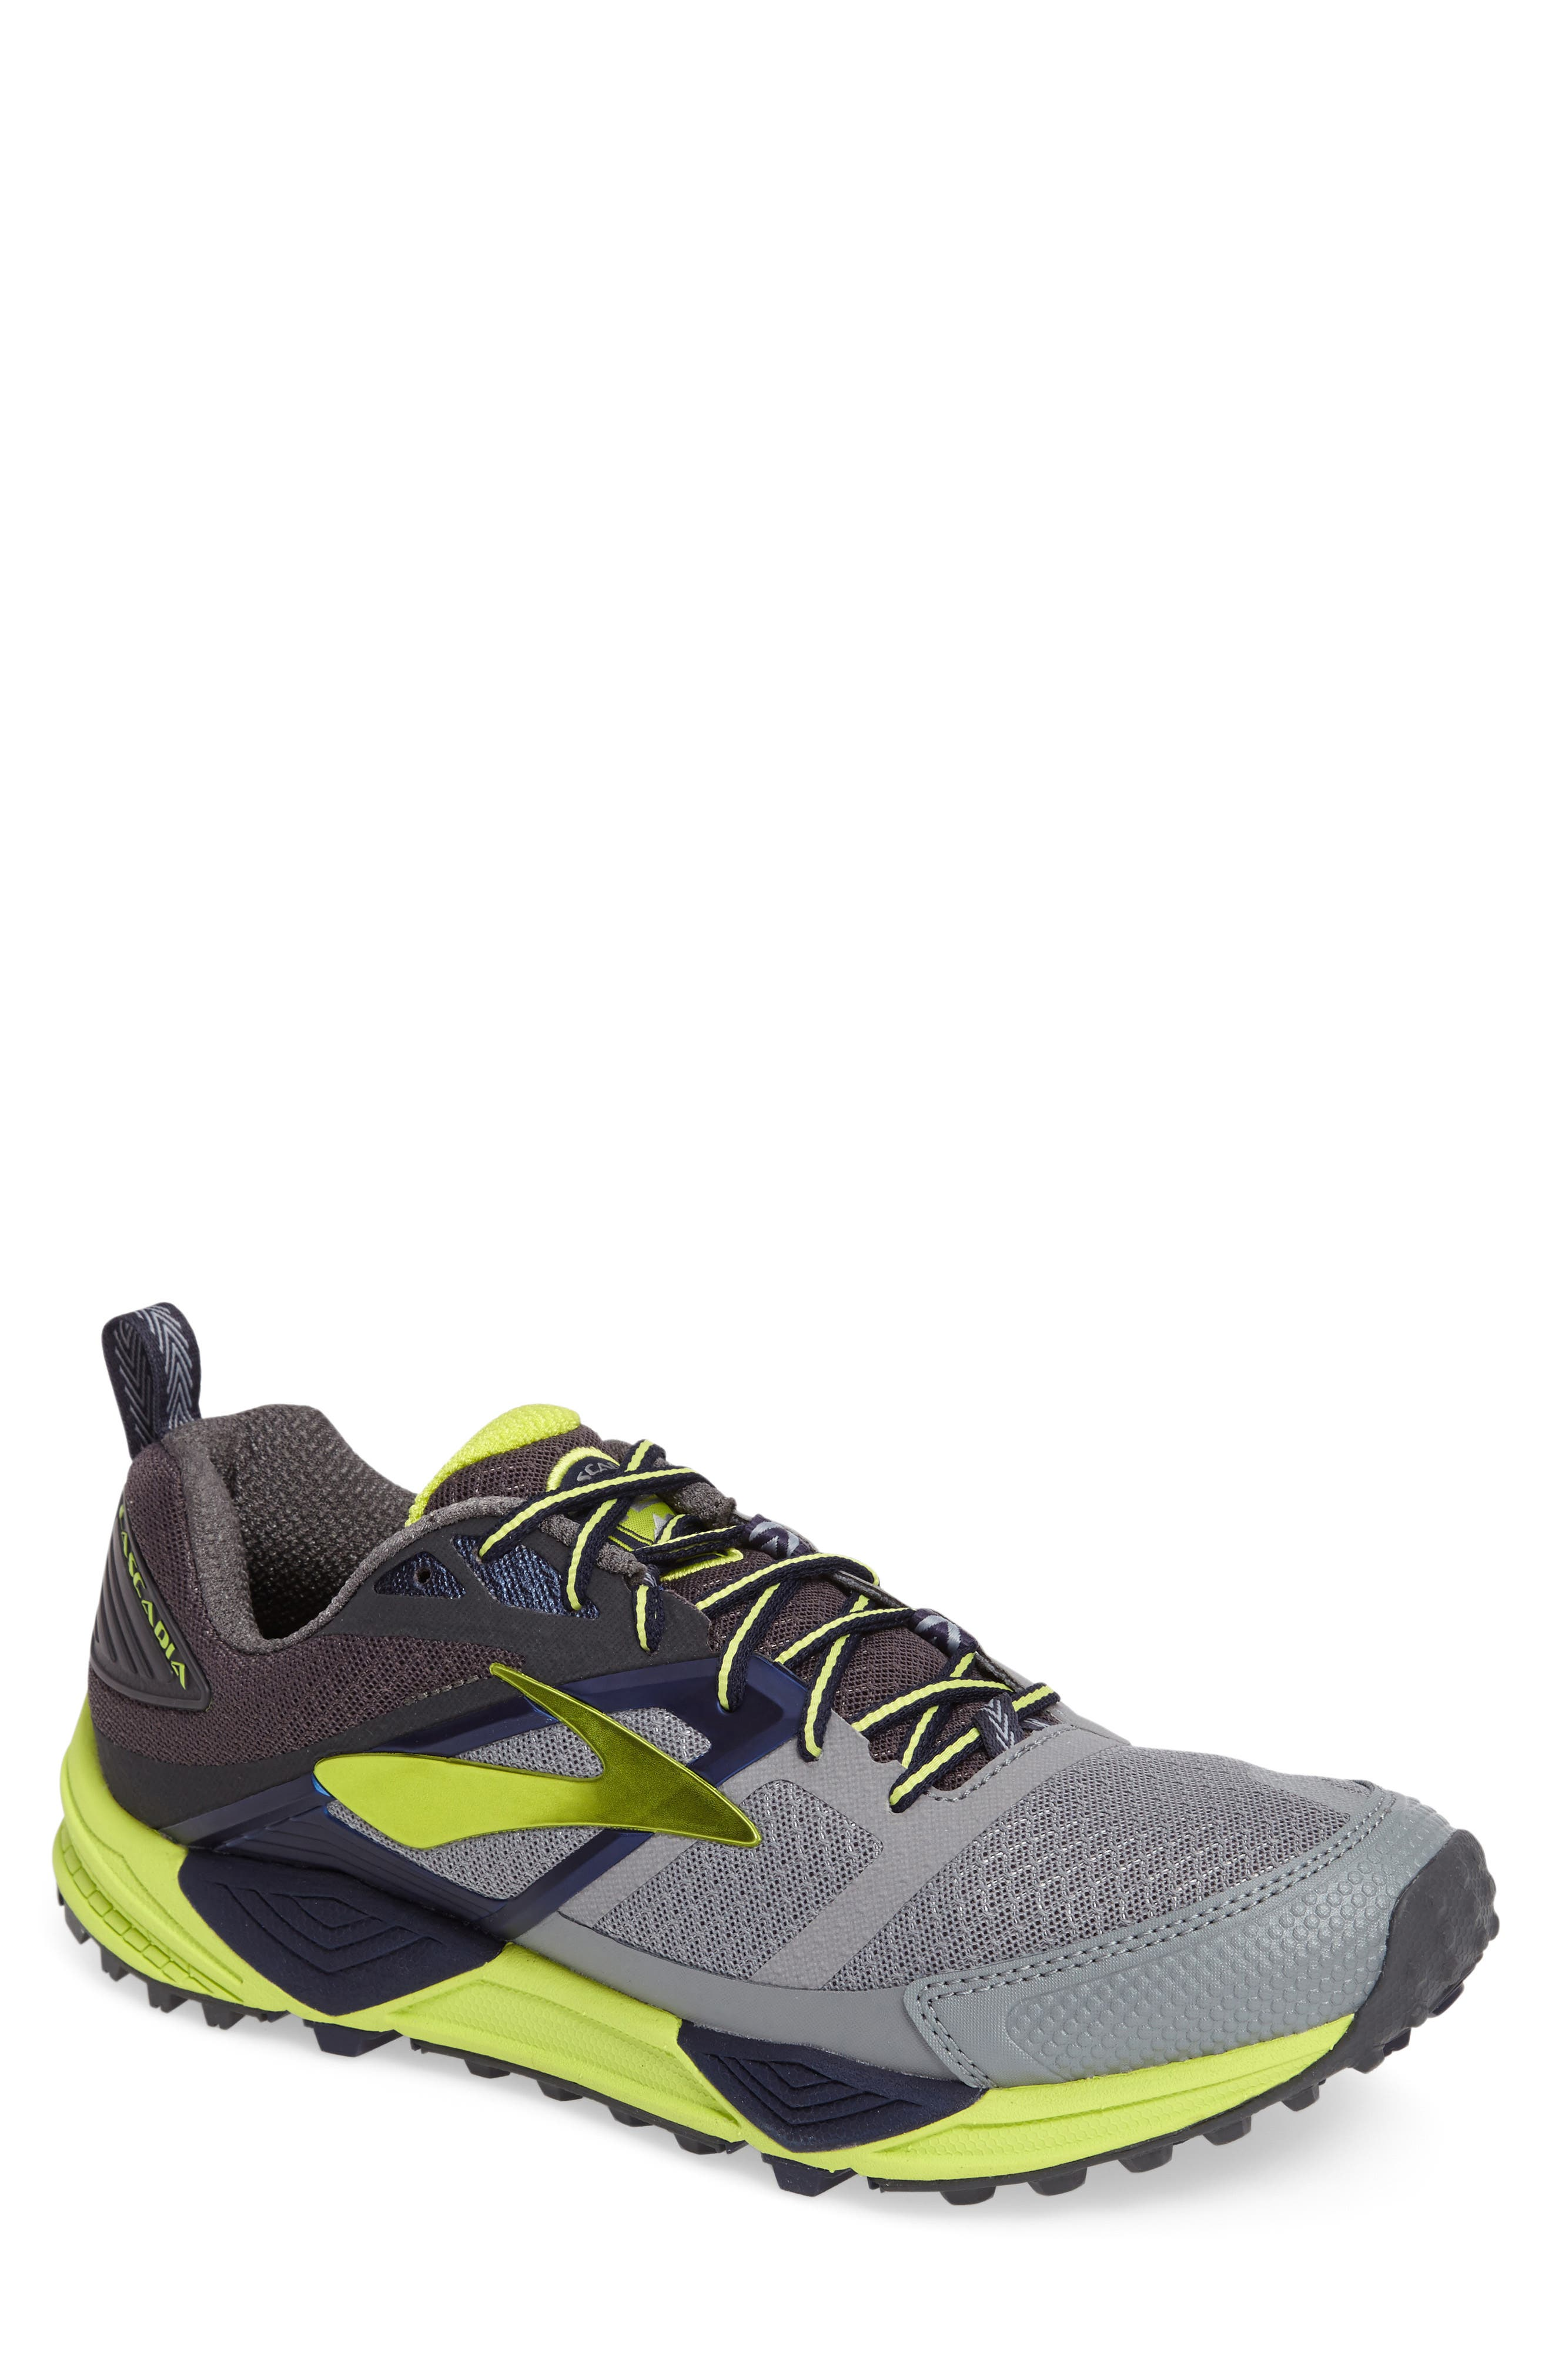 Cascadia 12 Trail Running Shoe,                             Main thumbnail 1, color,                             Grey/ Anthracite/ Lime Punch